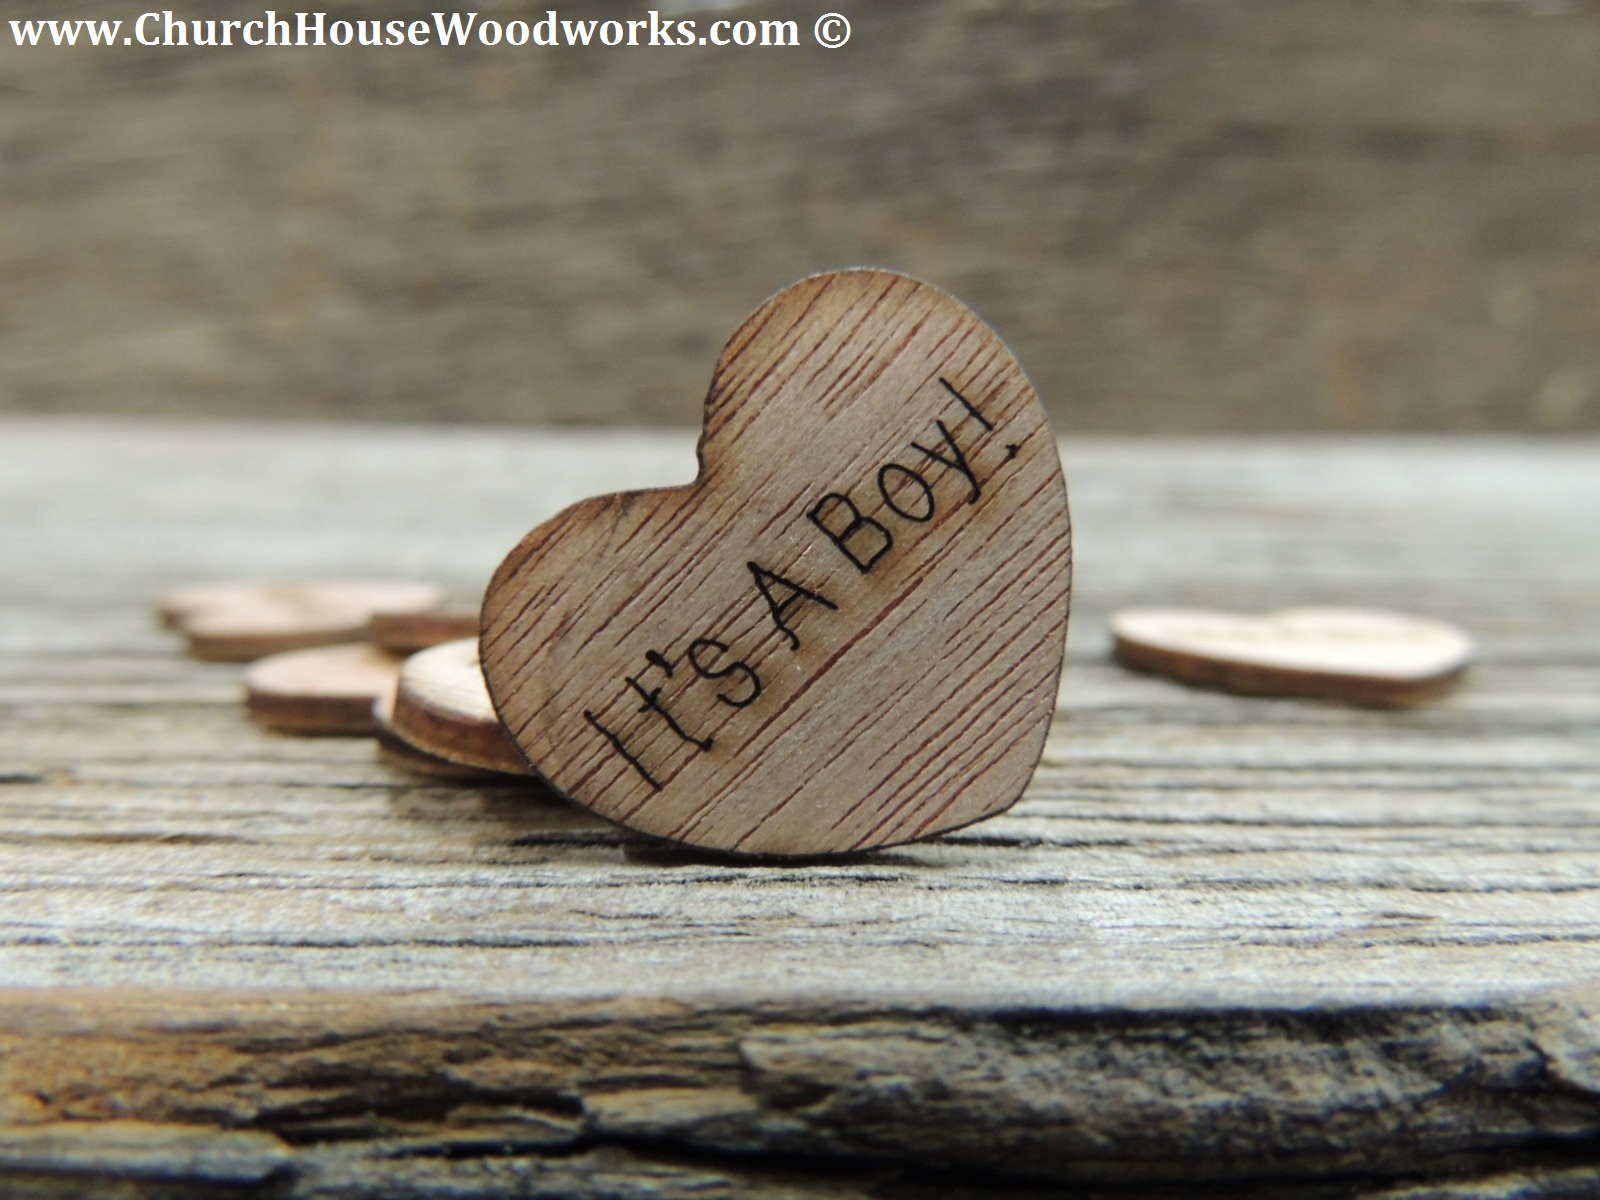 Rustic 4 Weddings Its A Boy Wood Heart Confetti For Baby Showers